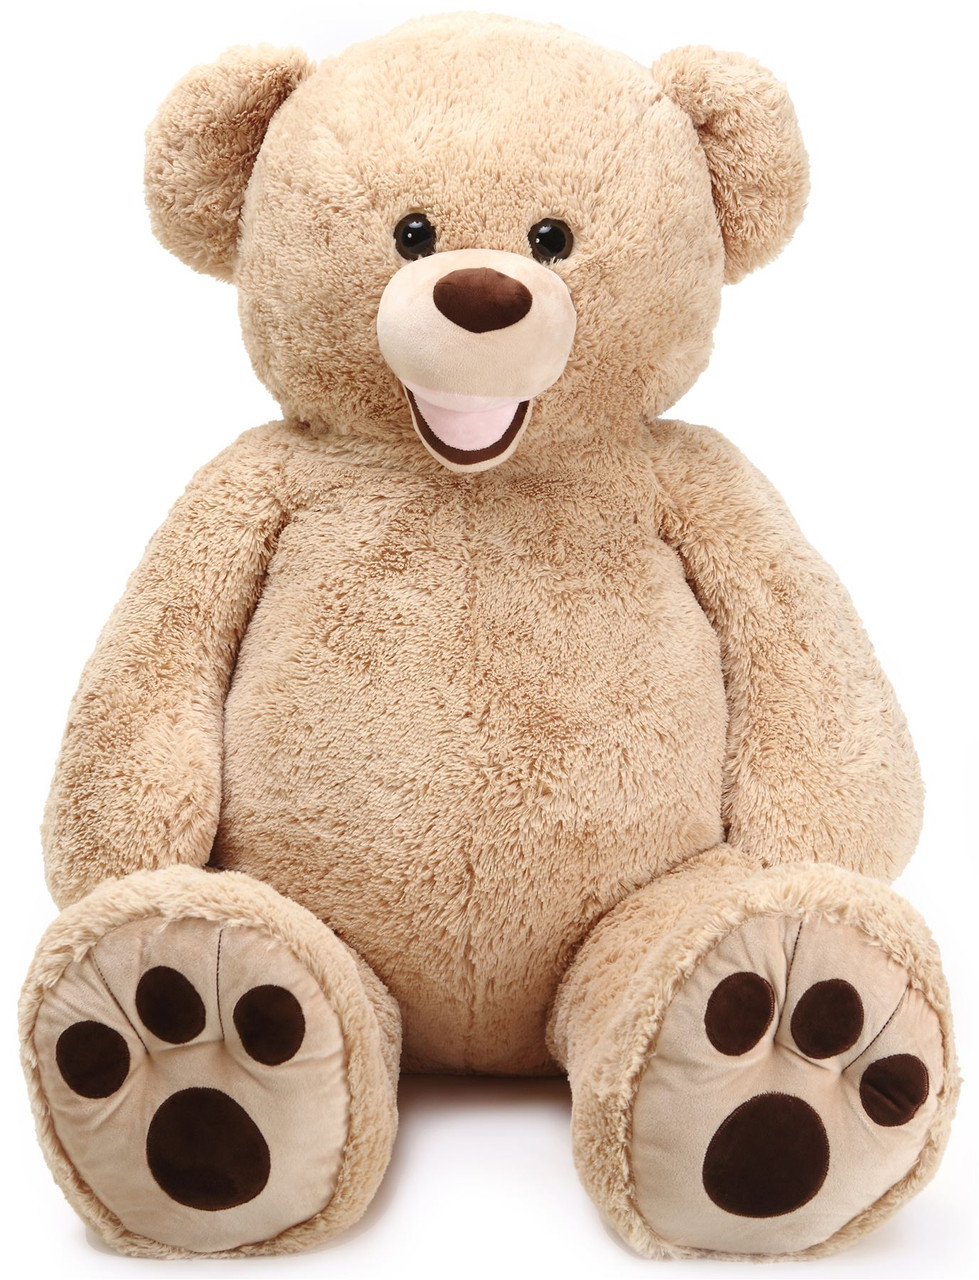 Brumsfeld The Bear 5 Foot 60 Inch Stuffed Animal Jumbo Big